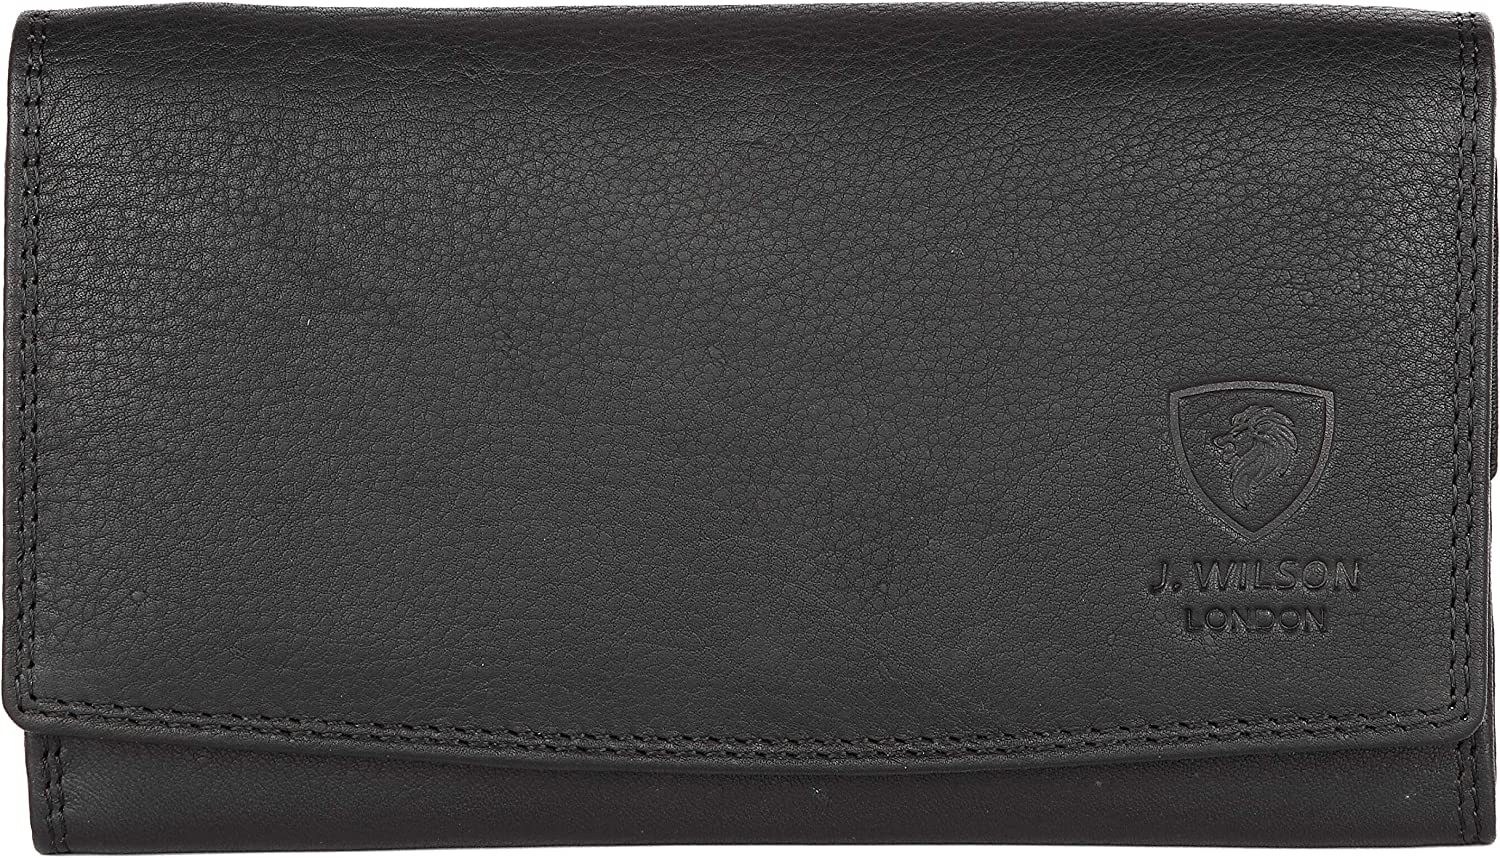 Ladies Designer RFID SAFE Protection Luxury Quality Soft Nappa Leather Purse Multi Credit Card Women Clutch Wallet with Zip pocket